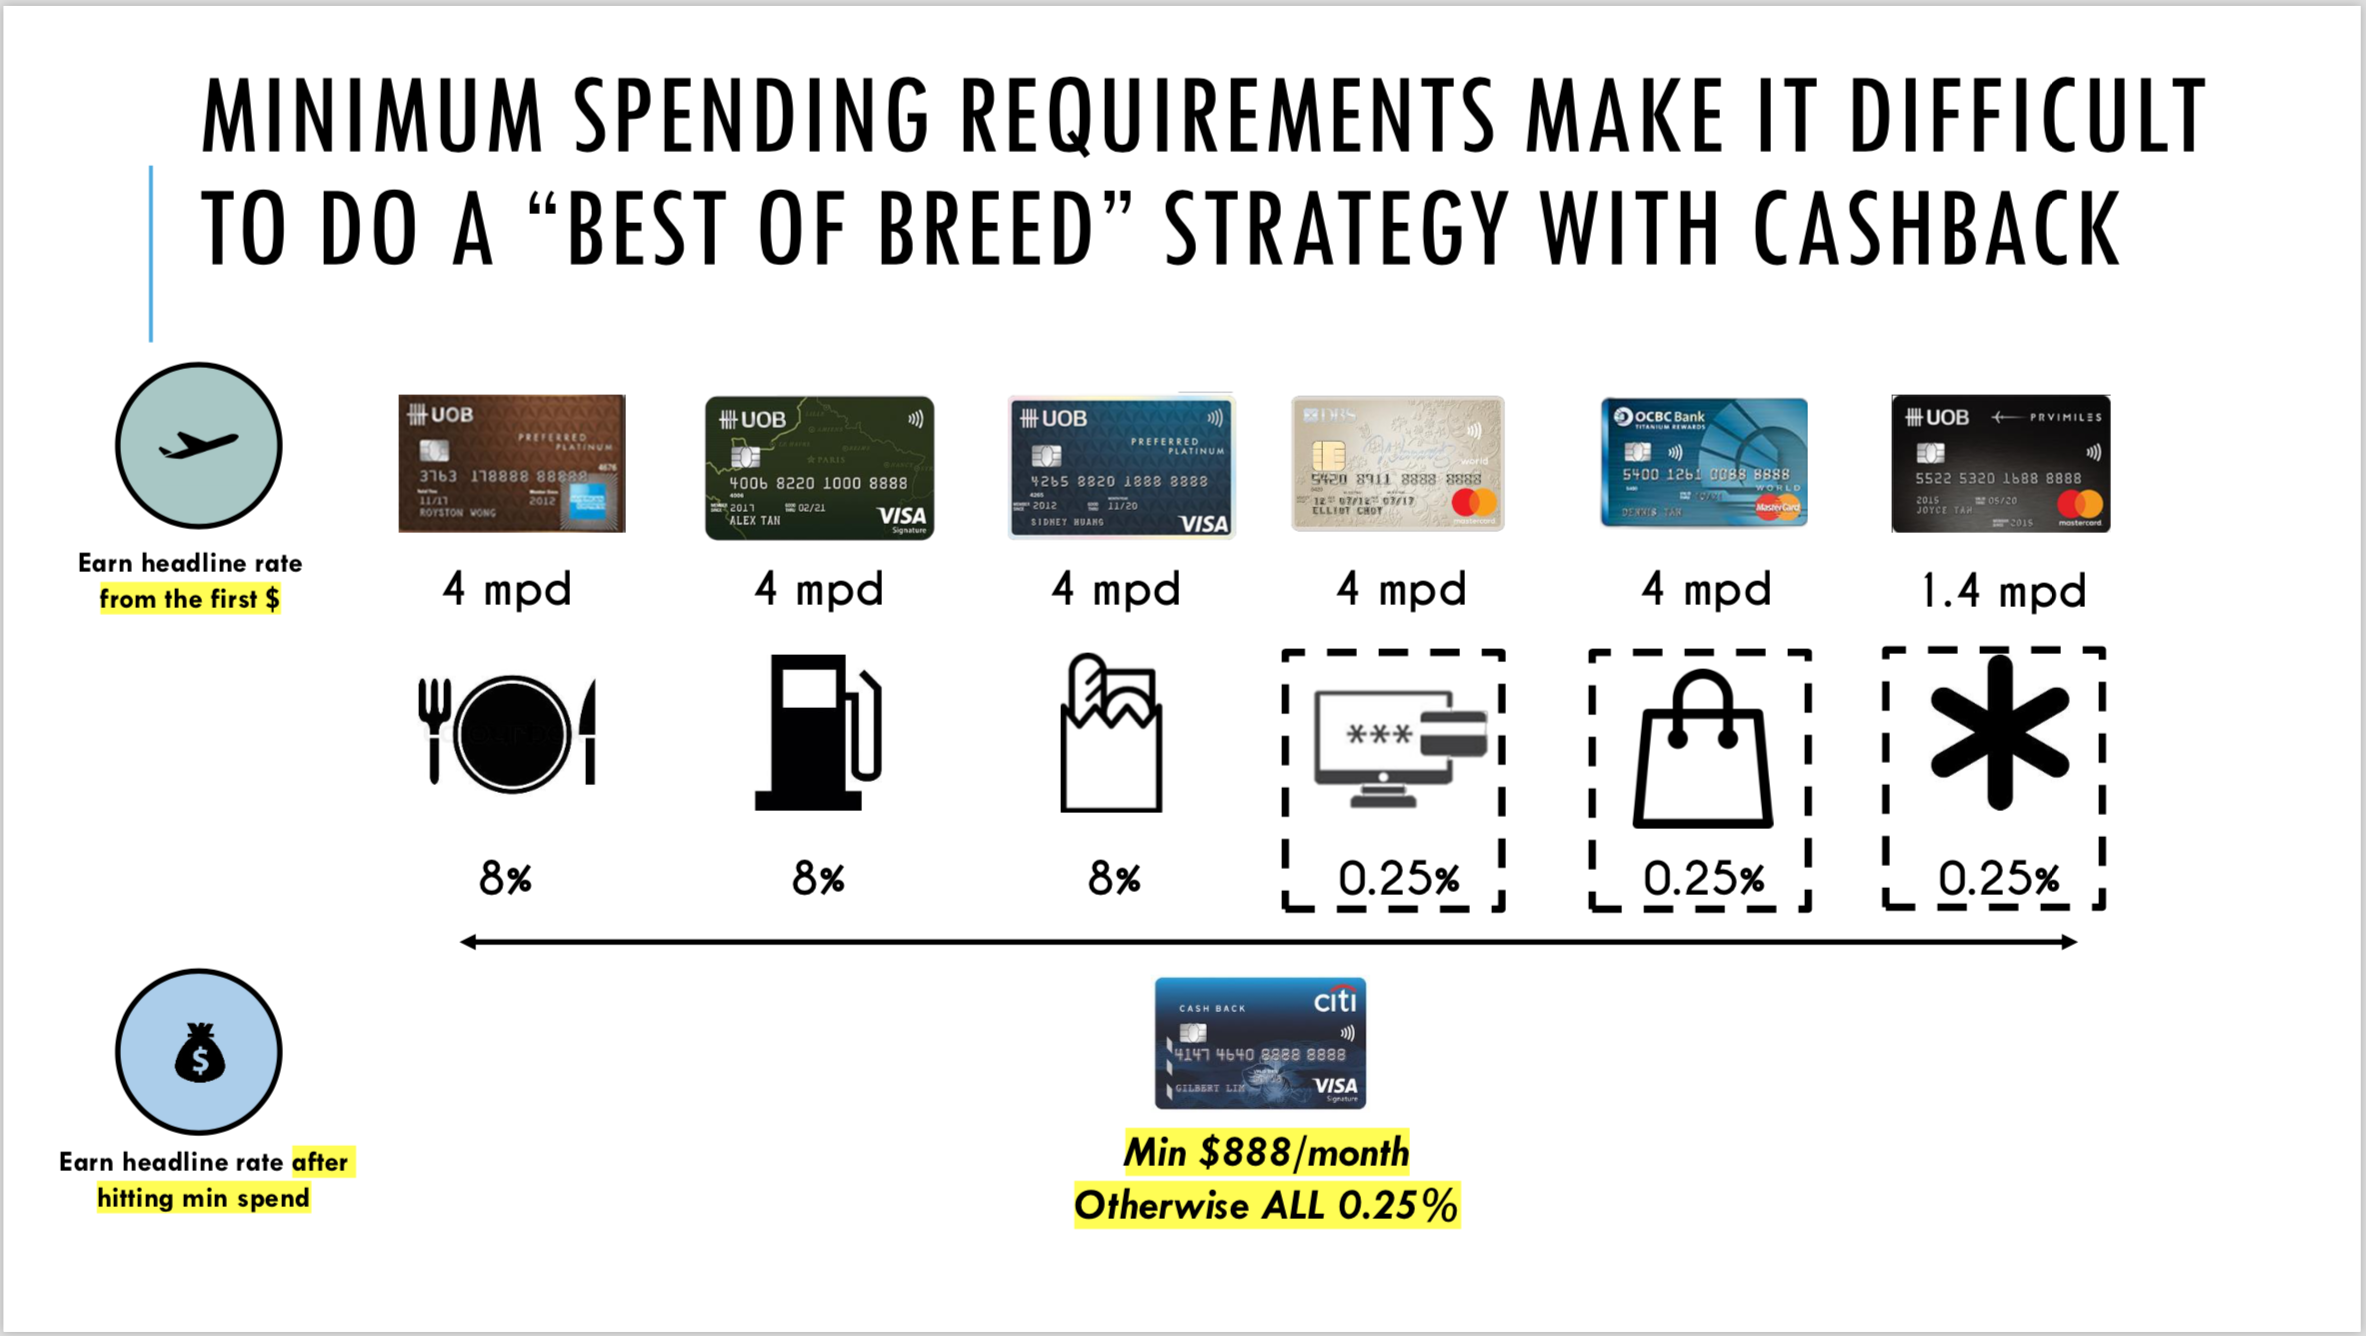 Cashback vs miles cards: Miles cards allow you to optimise your spend from the first dollar. Cashback cards require a minimum spend first. (Source: Aaron Wong)